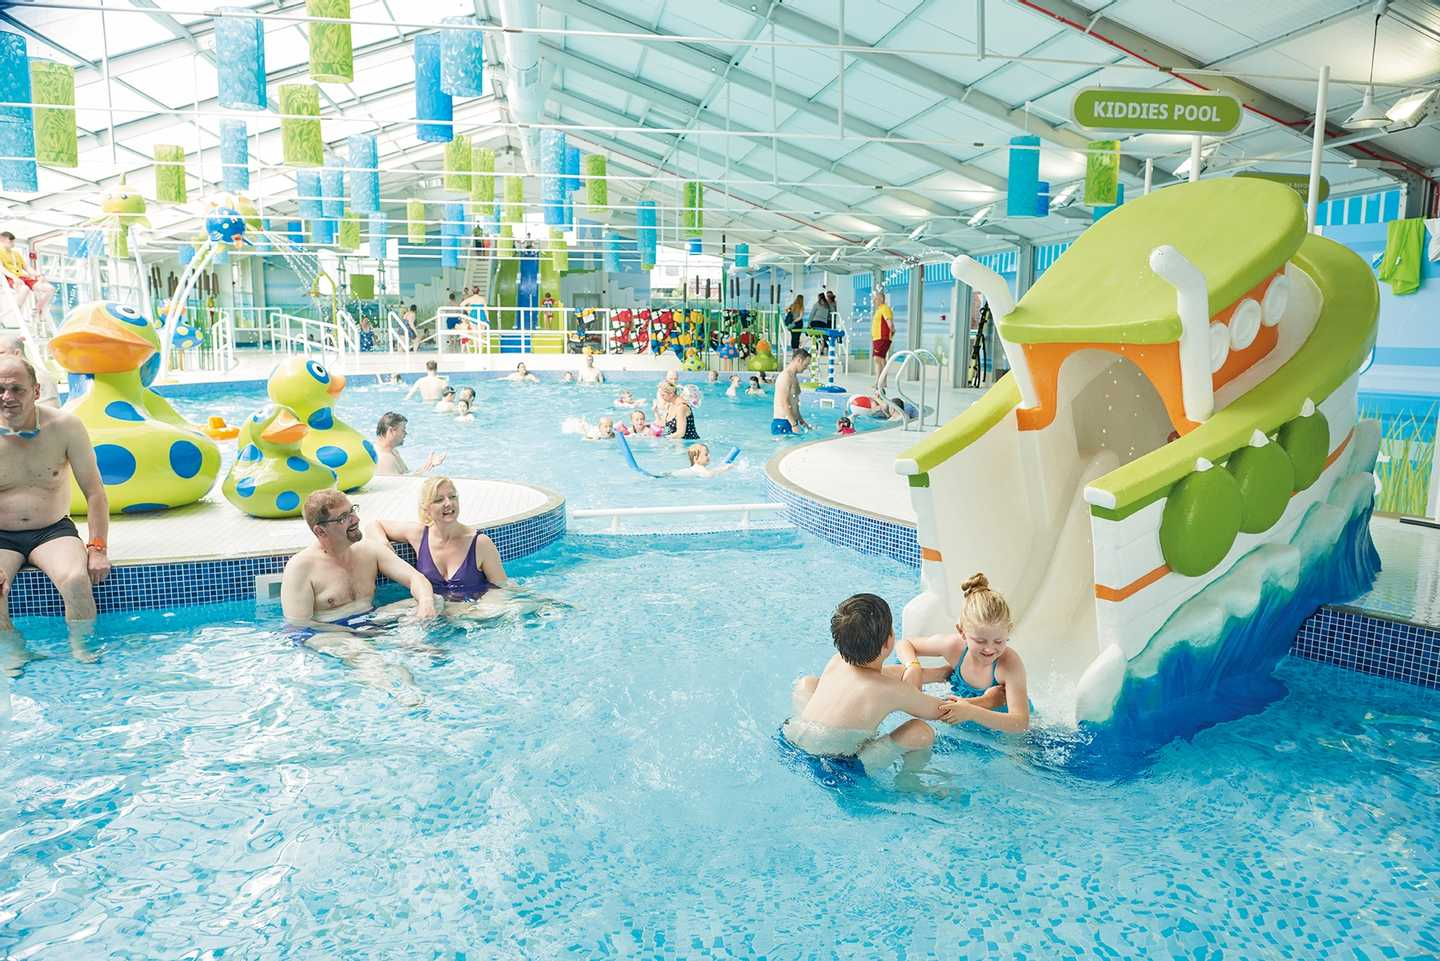 Guests in the indoor pool at Thornwick Bay